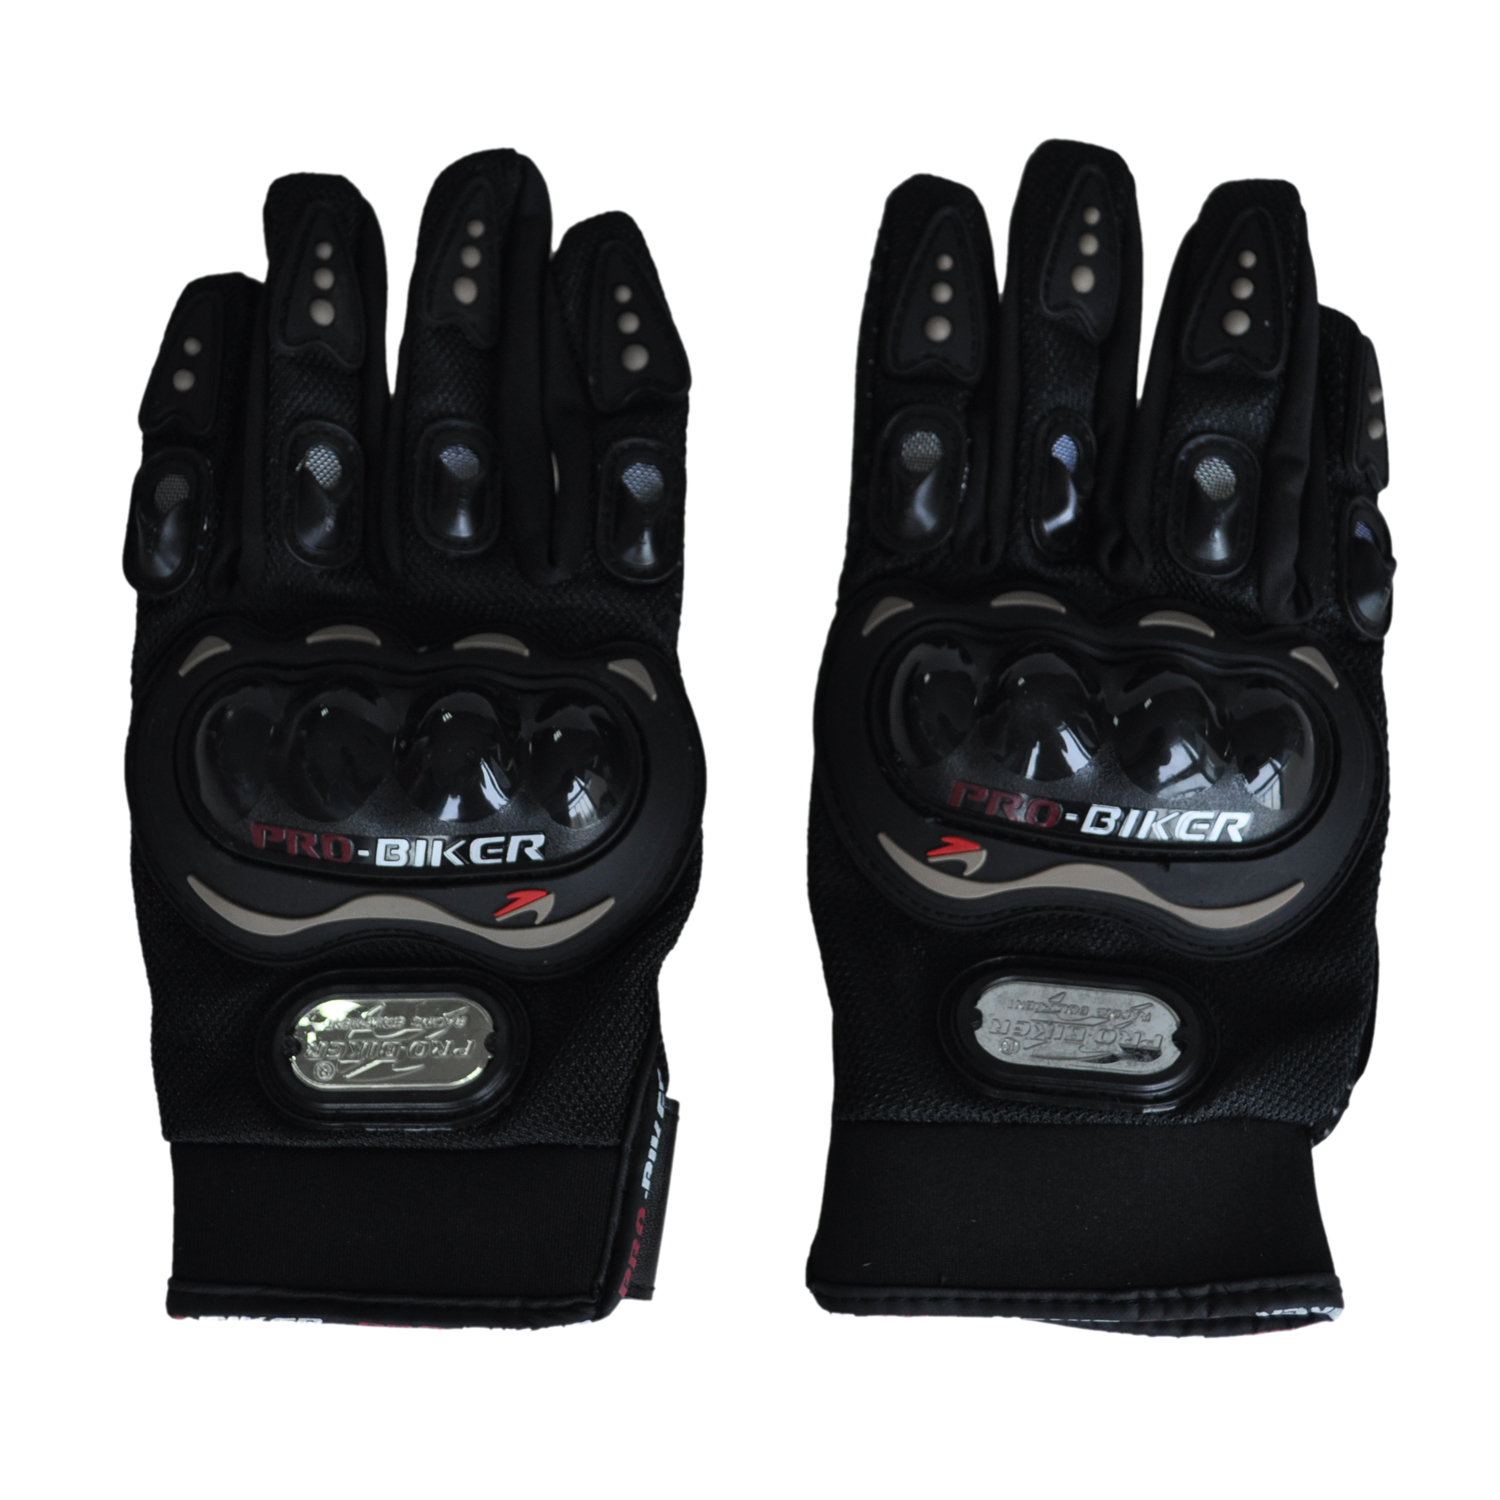 Unisex Touch Screen Fleece Thermal Winter Warm Gloves for Outdoor Cycling Skiing Hiking Black (M Size)